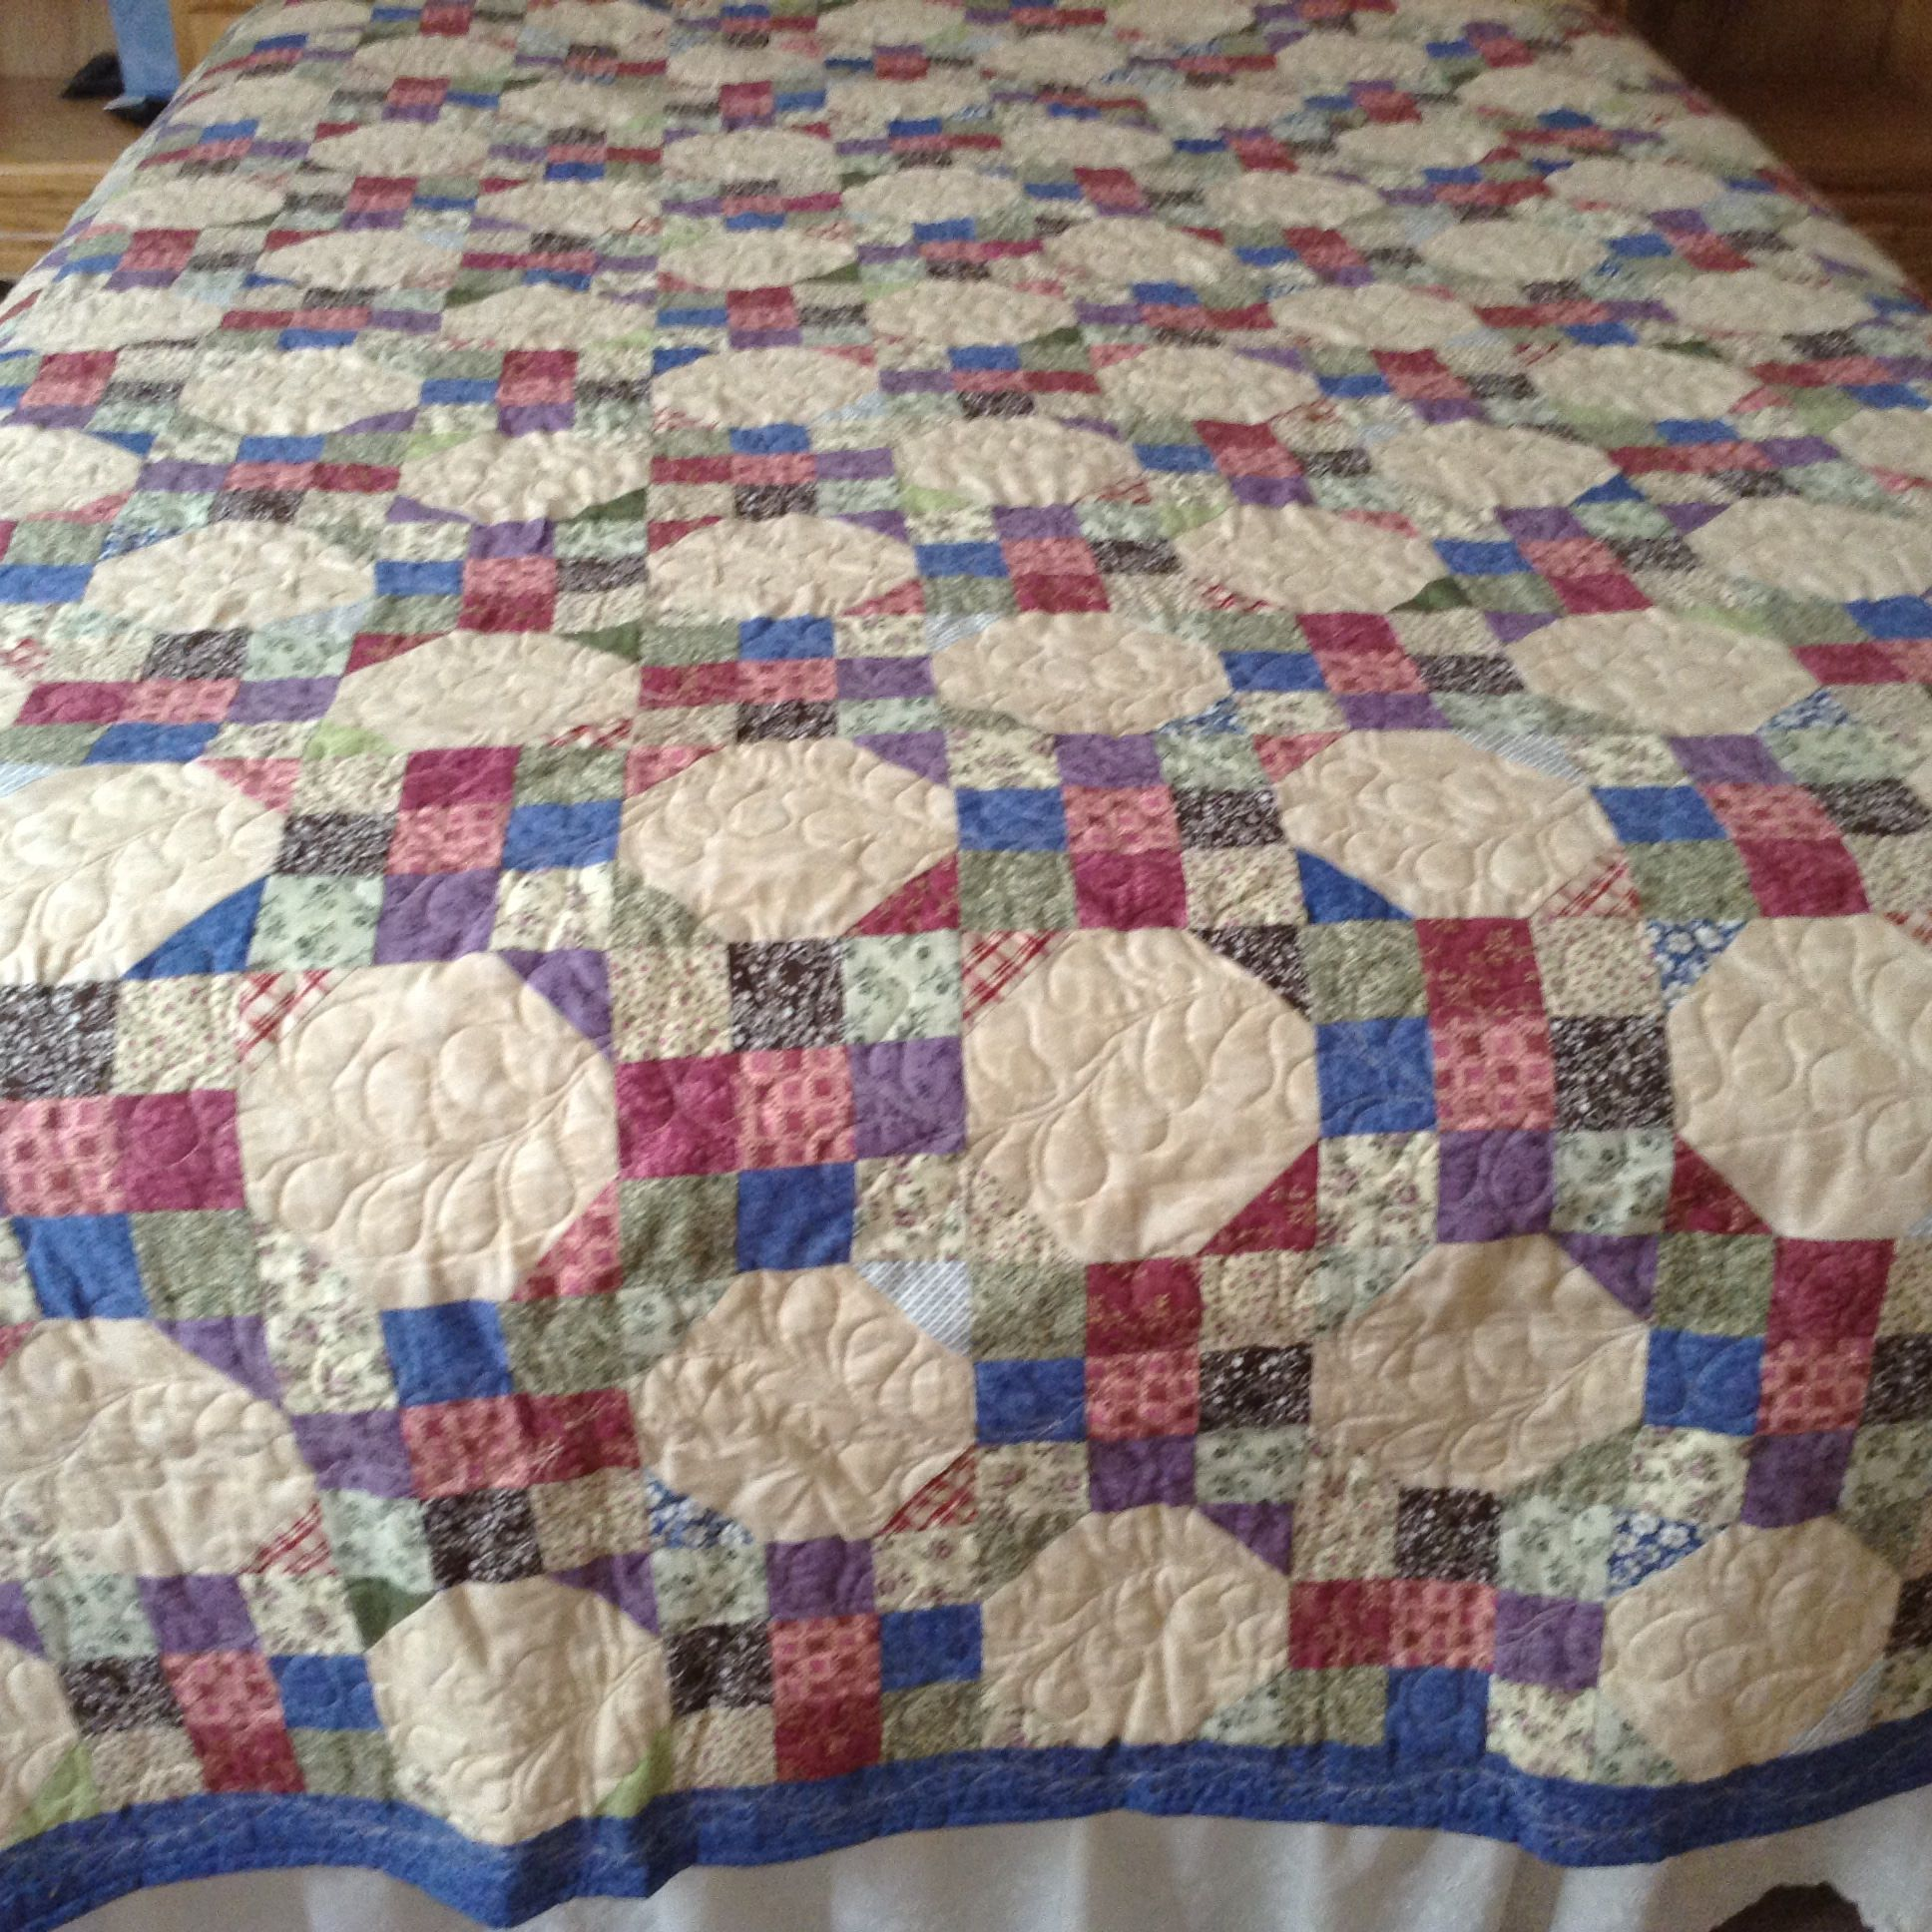 quilt quiltding with at size fascinating waverly cabin concept full sale wayfairquiltsquilt of clearance bedding queen walmart matching photos for sets